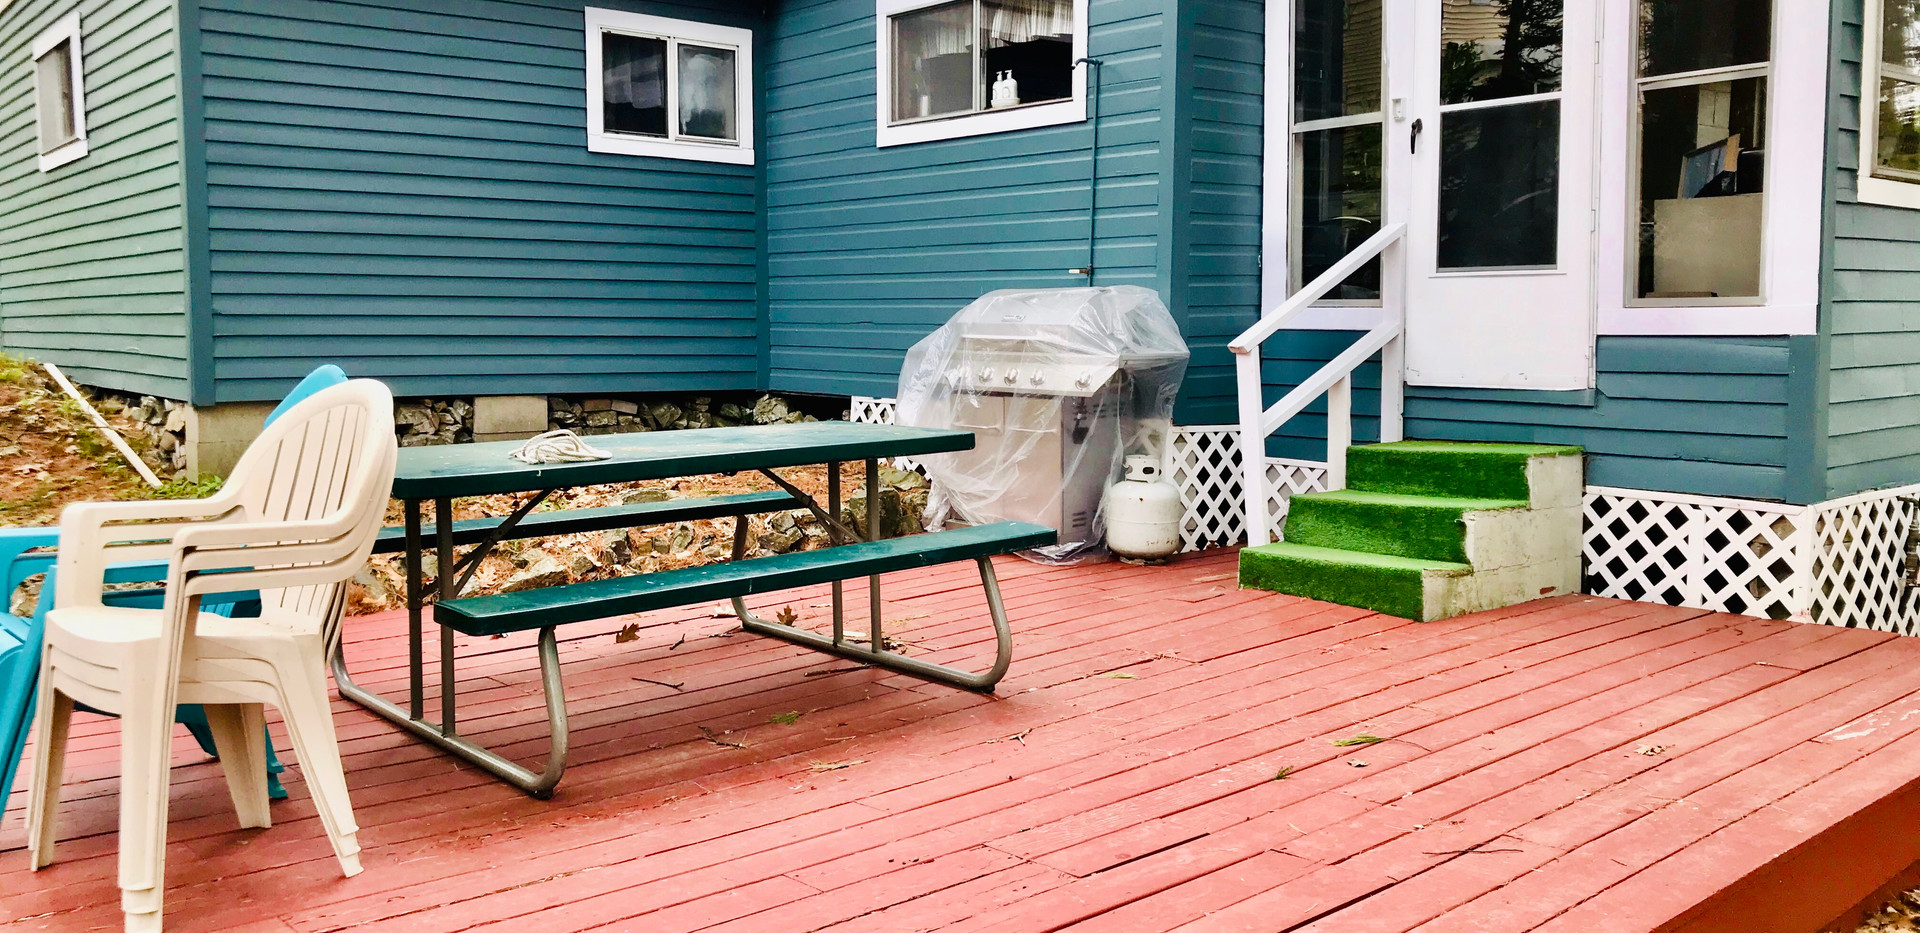 Back Deck with outdoor shower, picnic table and gas grill.